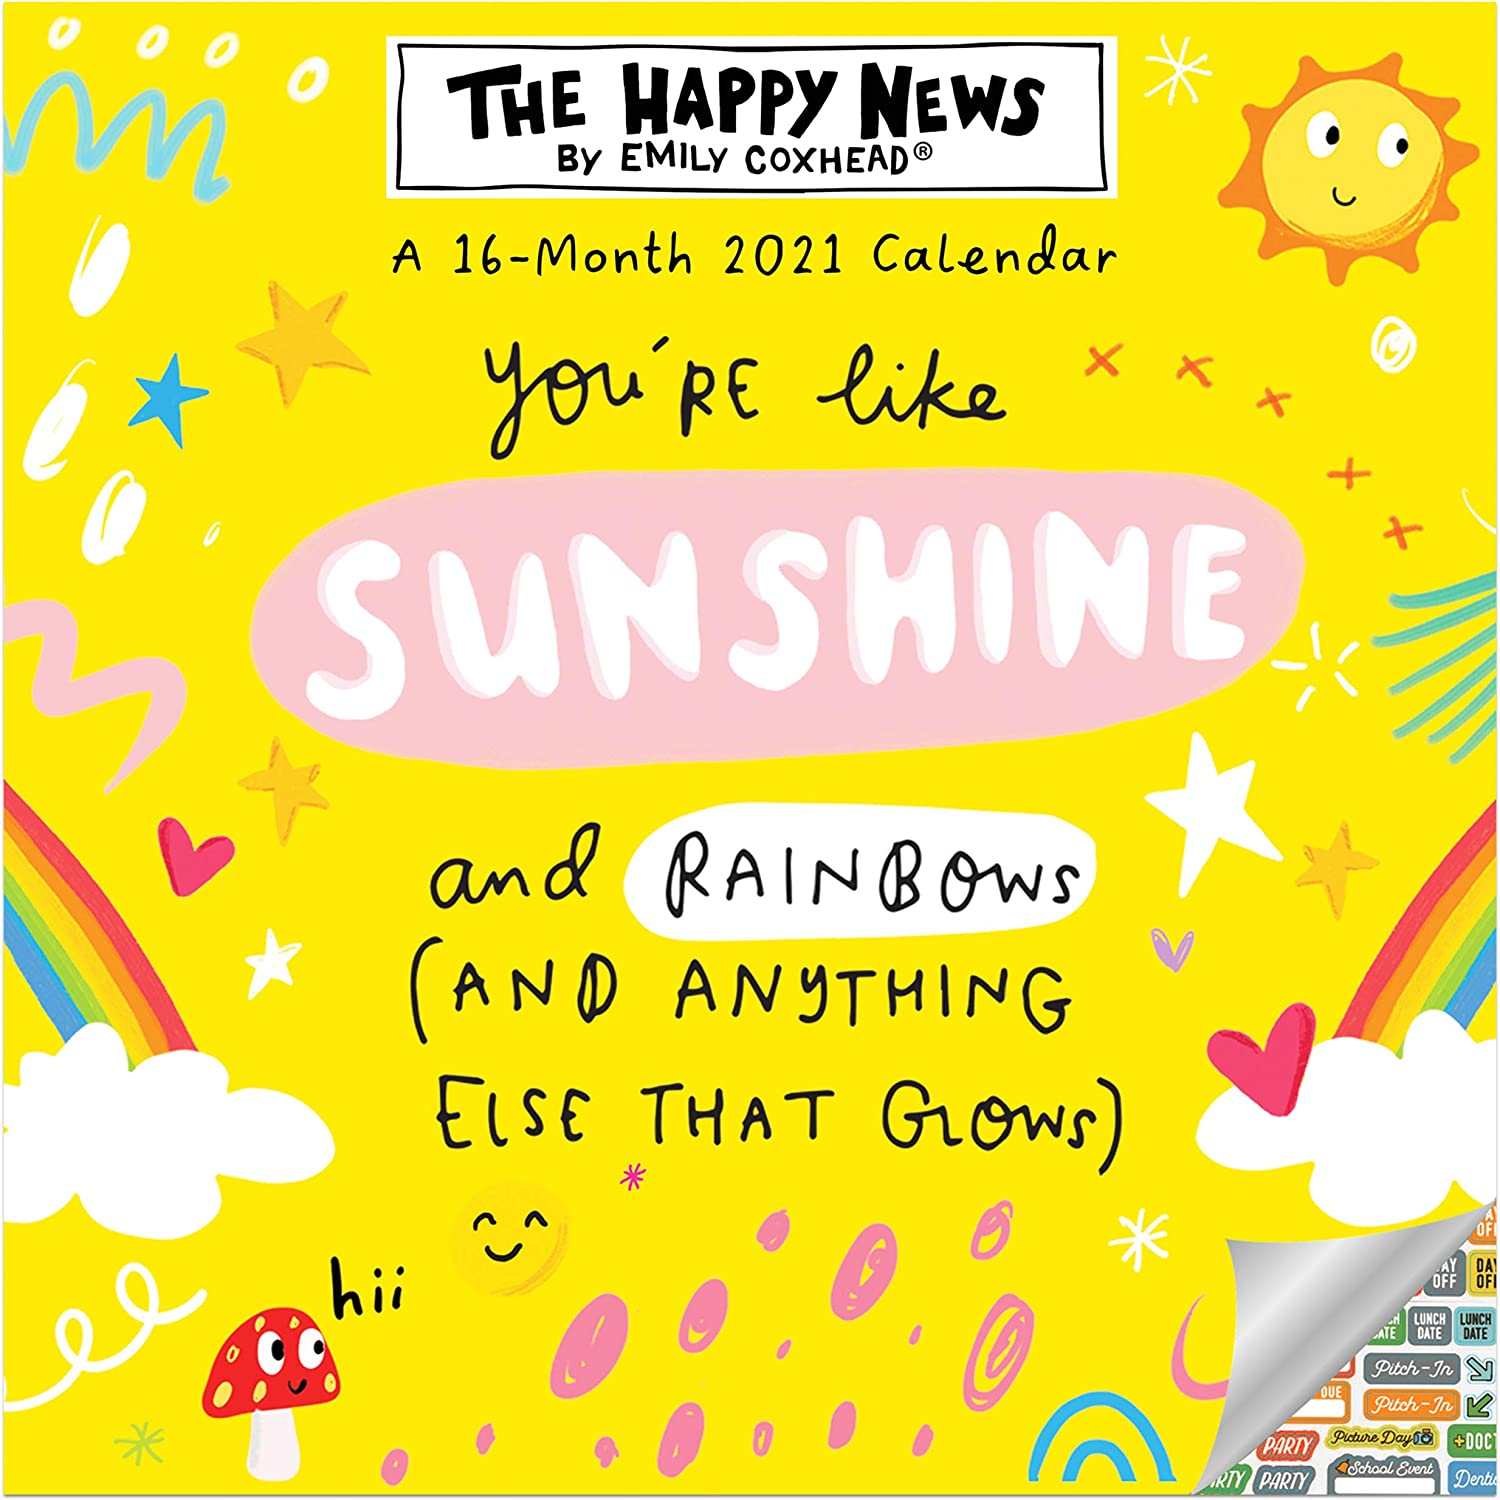 Happy Quotes Calendar 2021 Bundle - Deluxe 2021 The Happy News by Emily Coxhead Wall Calendar with Over 100 Calendar Stickers (Happy Quotes Gifts, Office Supplies)